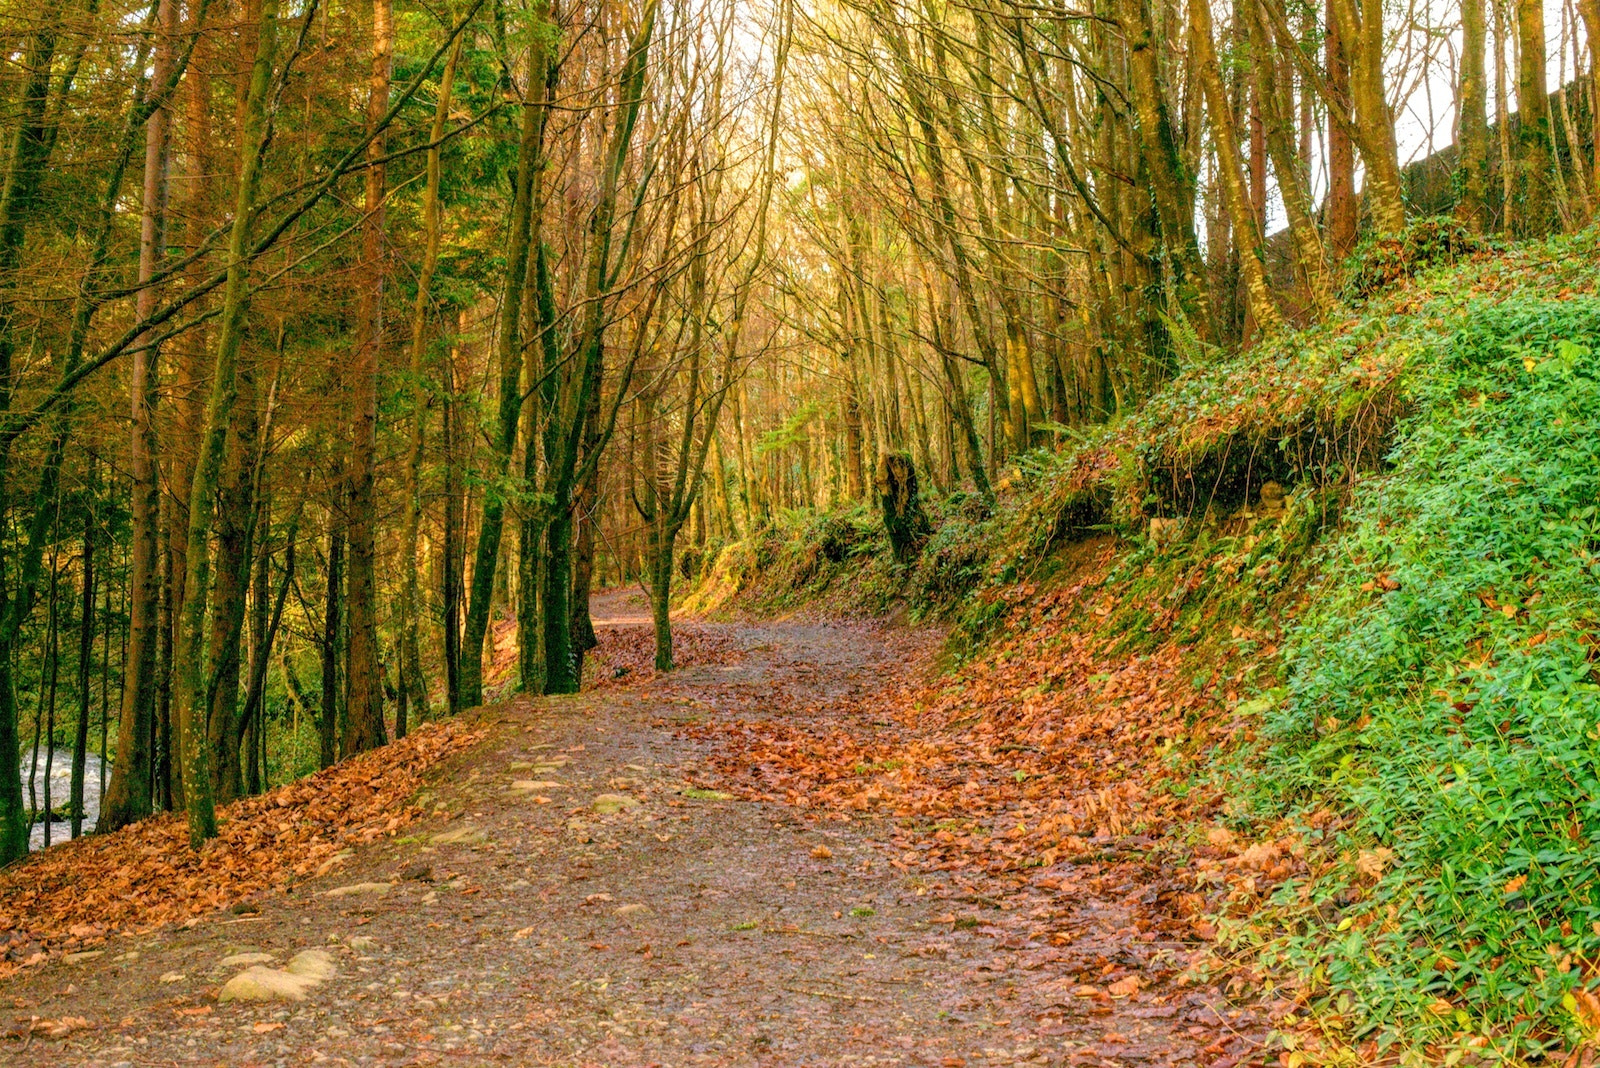 Photograph End of Autumn, Ireland by Mosin  on 500px